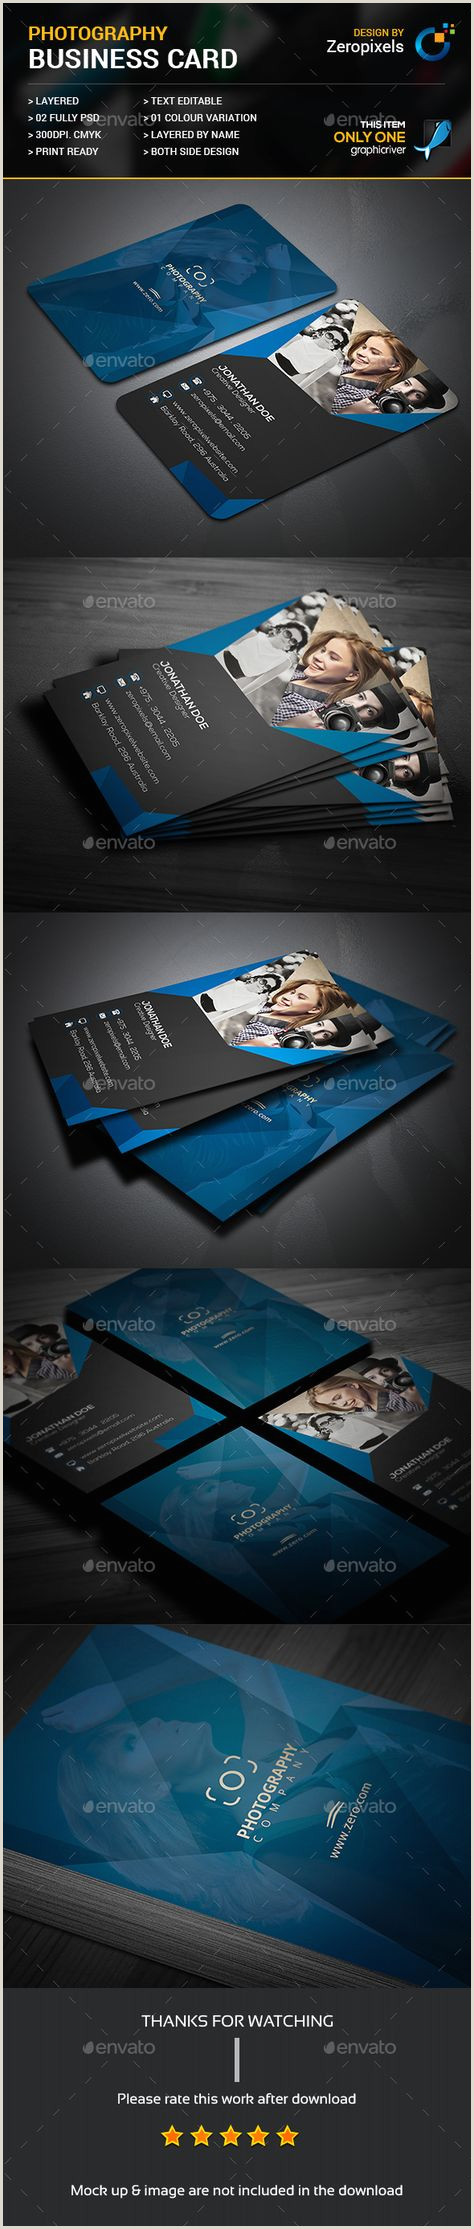 Pictures Of Some Of The Best Business Cards Graphy Business Cards Template Free 70 Trendy Ideas